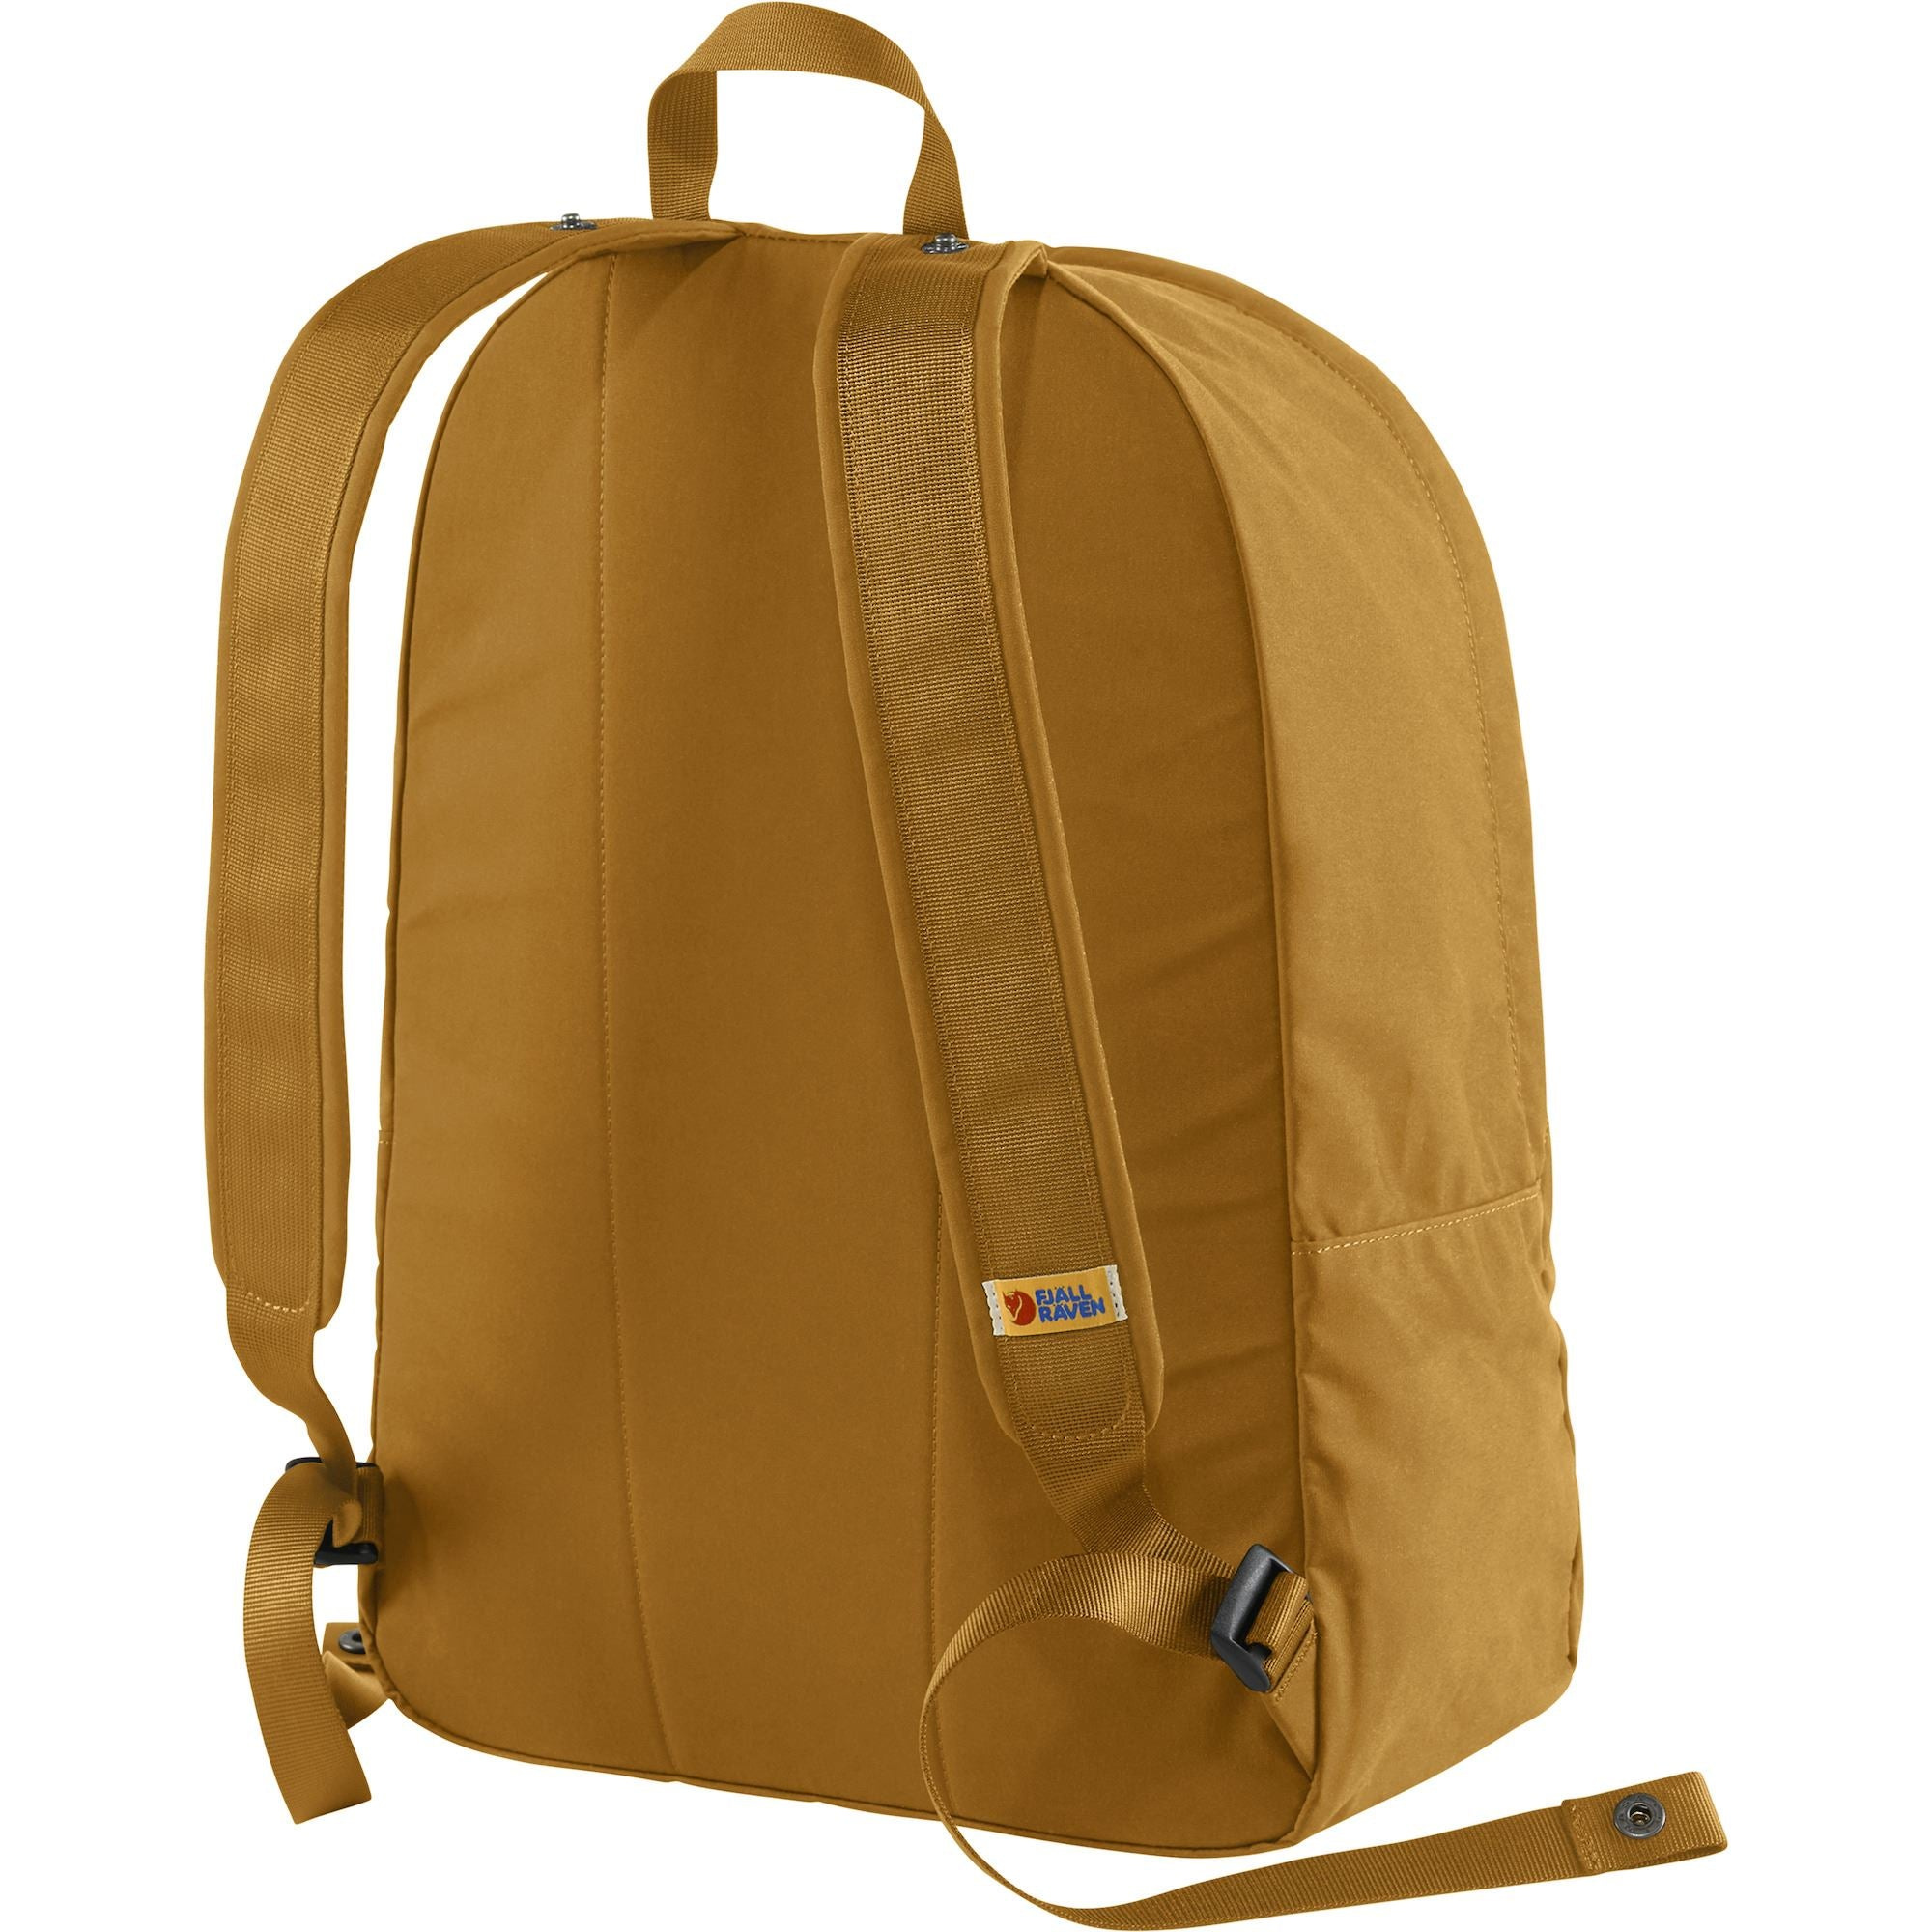 Ultimate everyday backpack from contemporary masters Fjällräven: light, convenient, easy to use and sling on and off constantly, highly accessible and coming in an awesome acorn brown for year-round suitability.